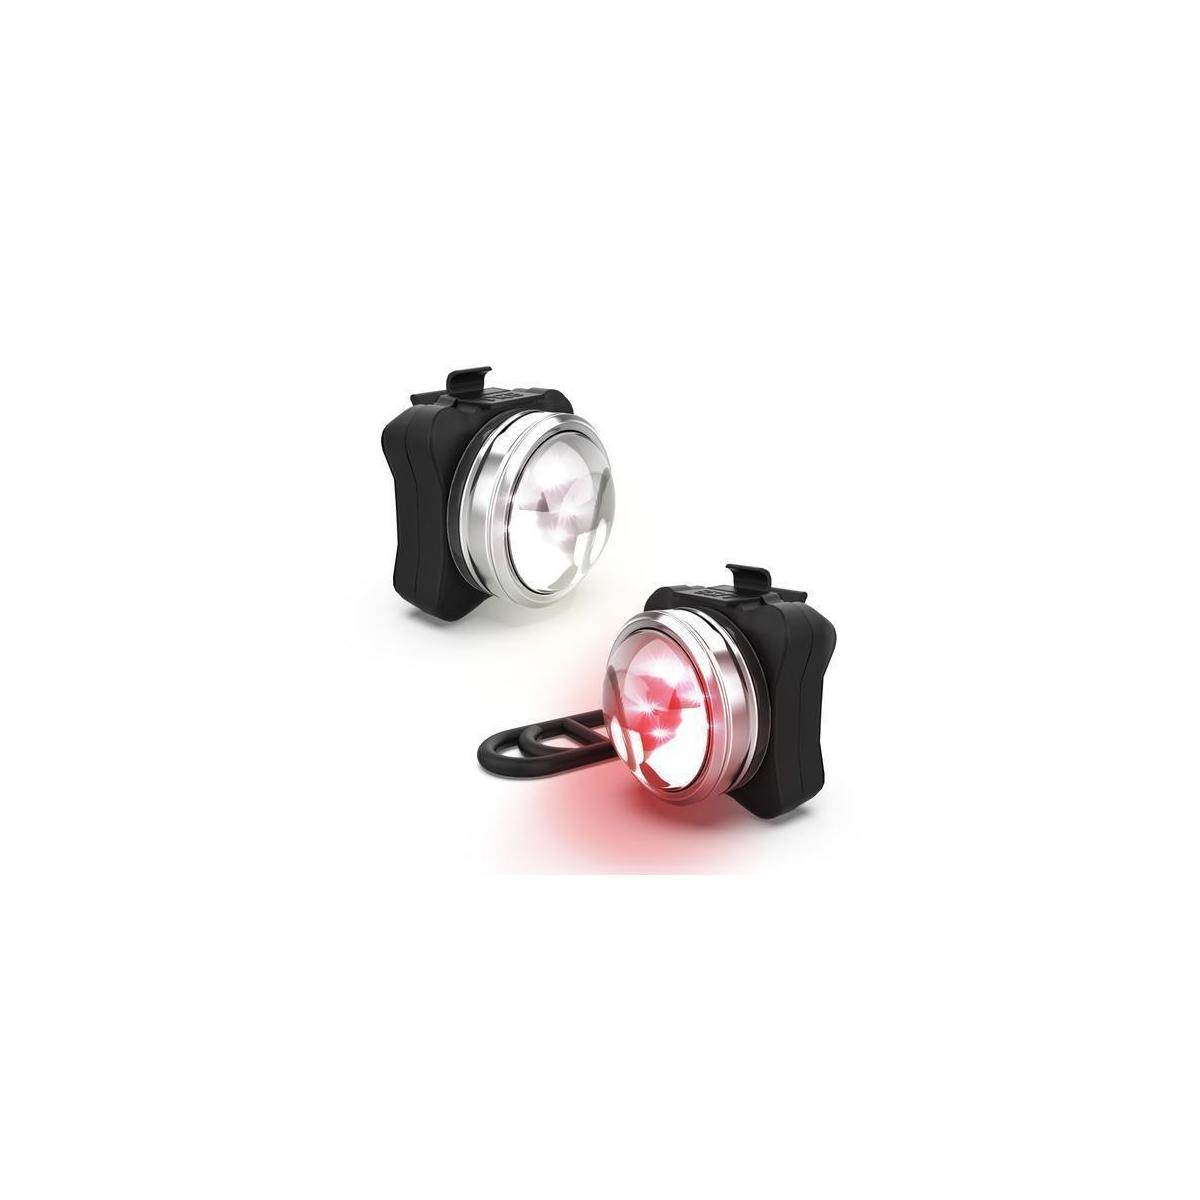 COMPACT & POWERFUL FRONT & REAR  BIKE LIGHT  210 LUMENS  USB RECHARGEABLE BIKE LIGHT SET